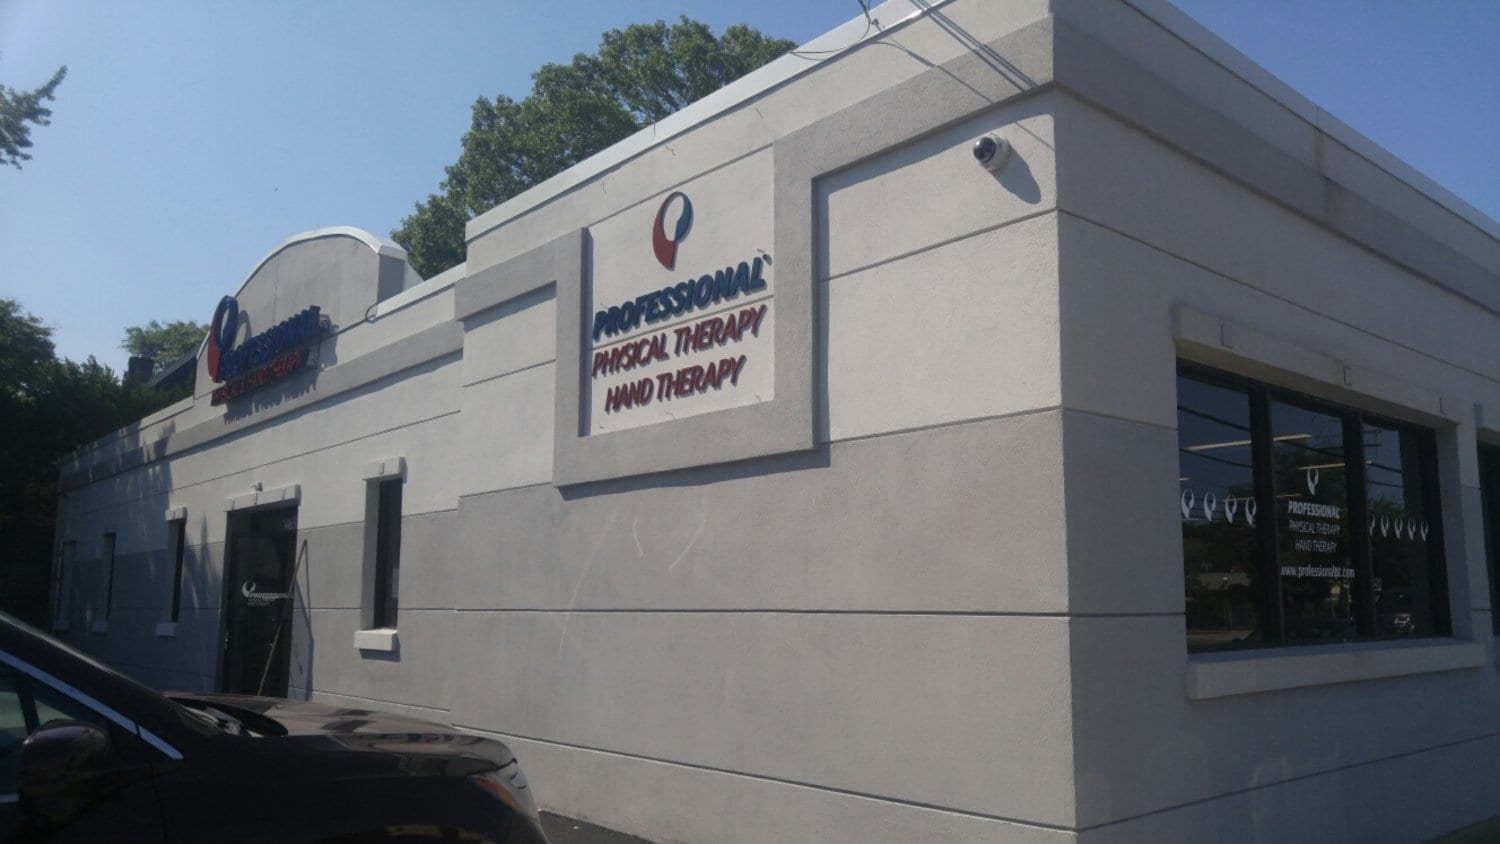 An image of the exterior of our physical & hand therapy clinic in Hewlett, New York.